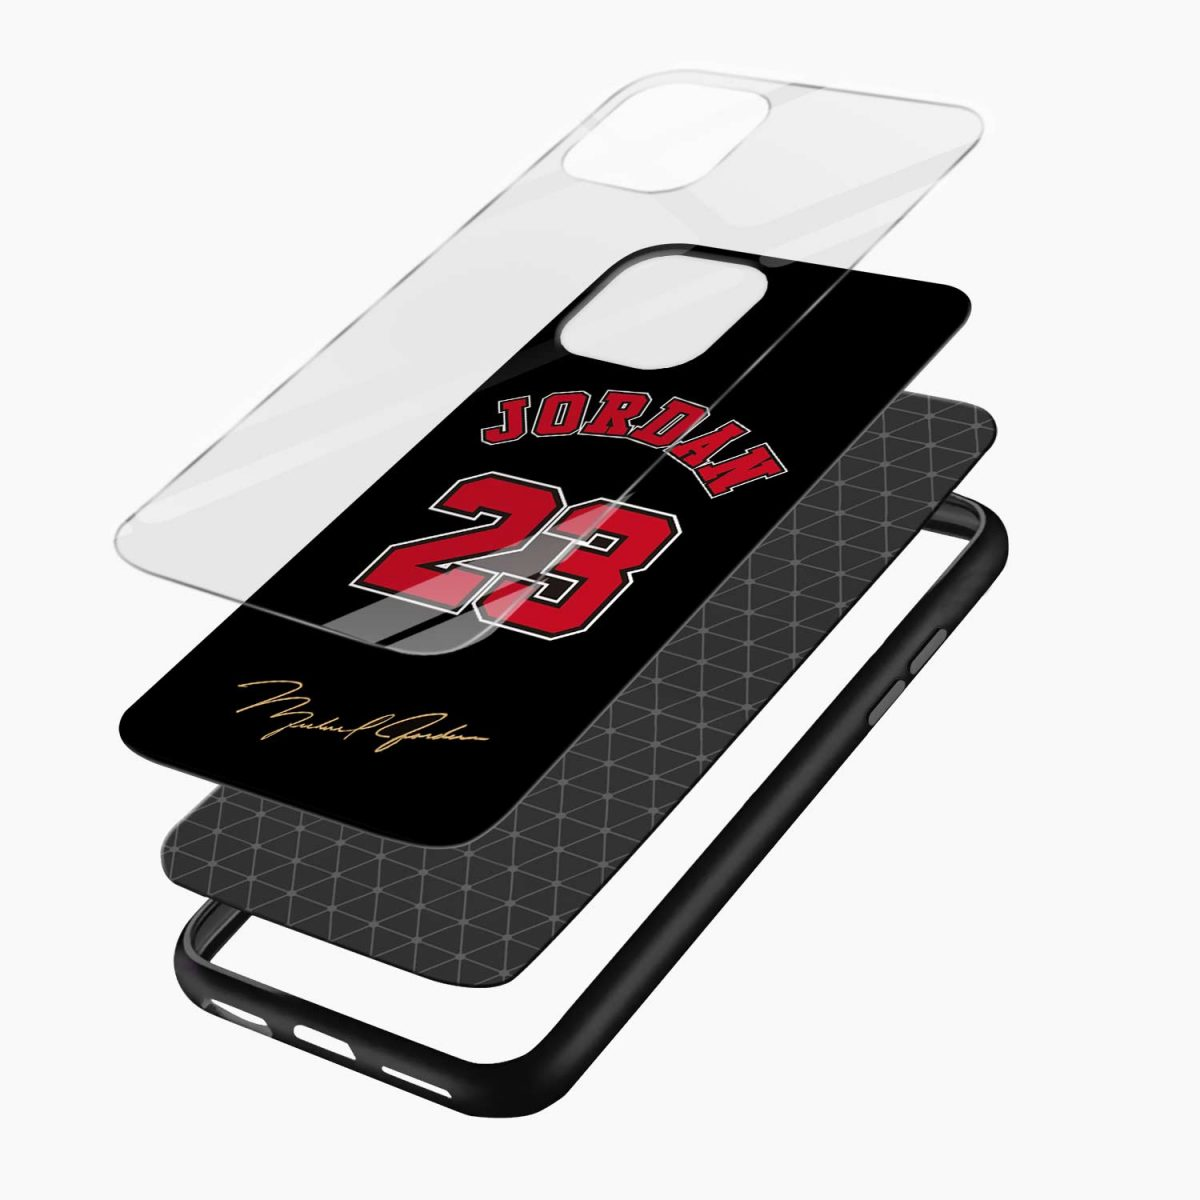 jordan 23 iphone pro back cover layers view